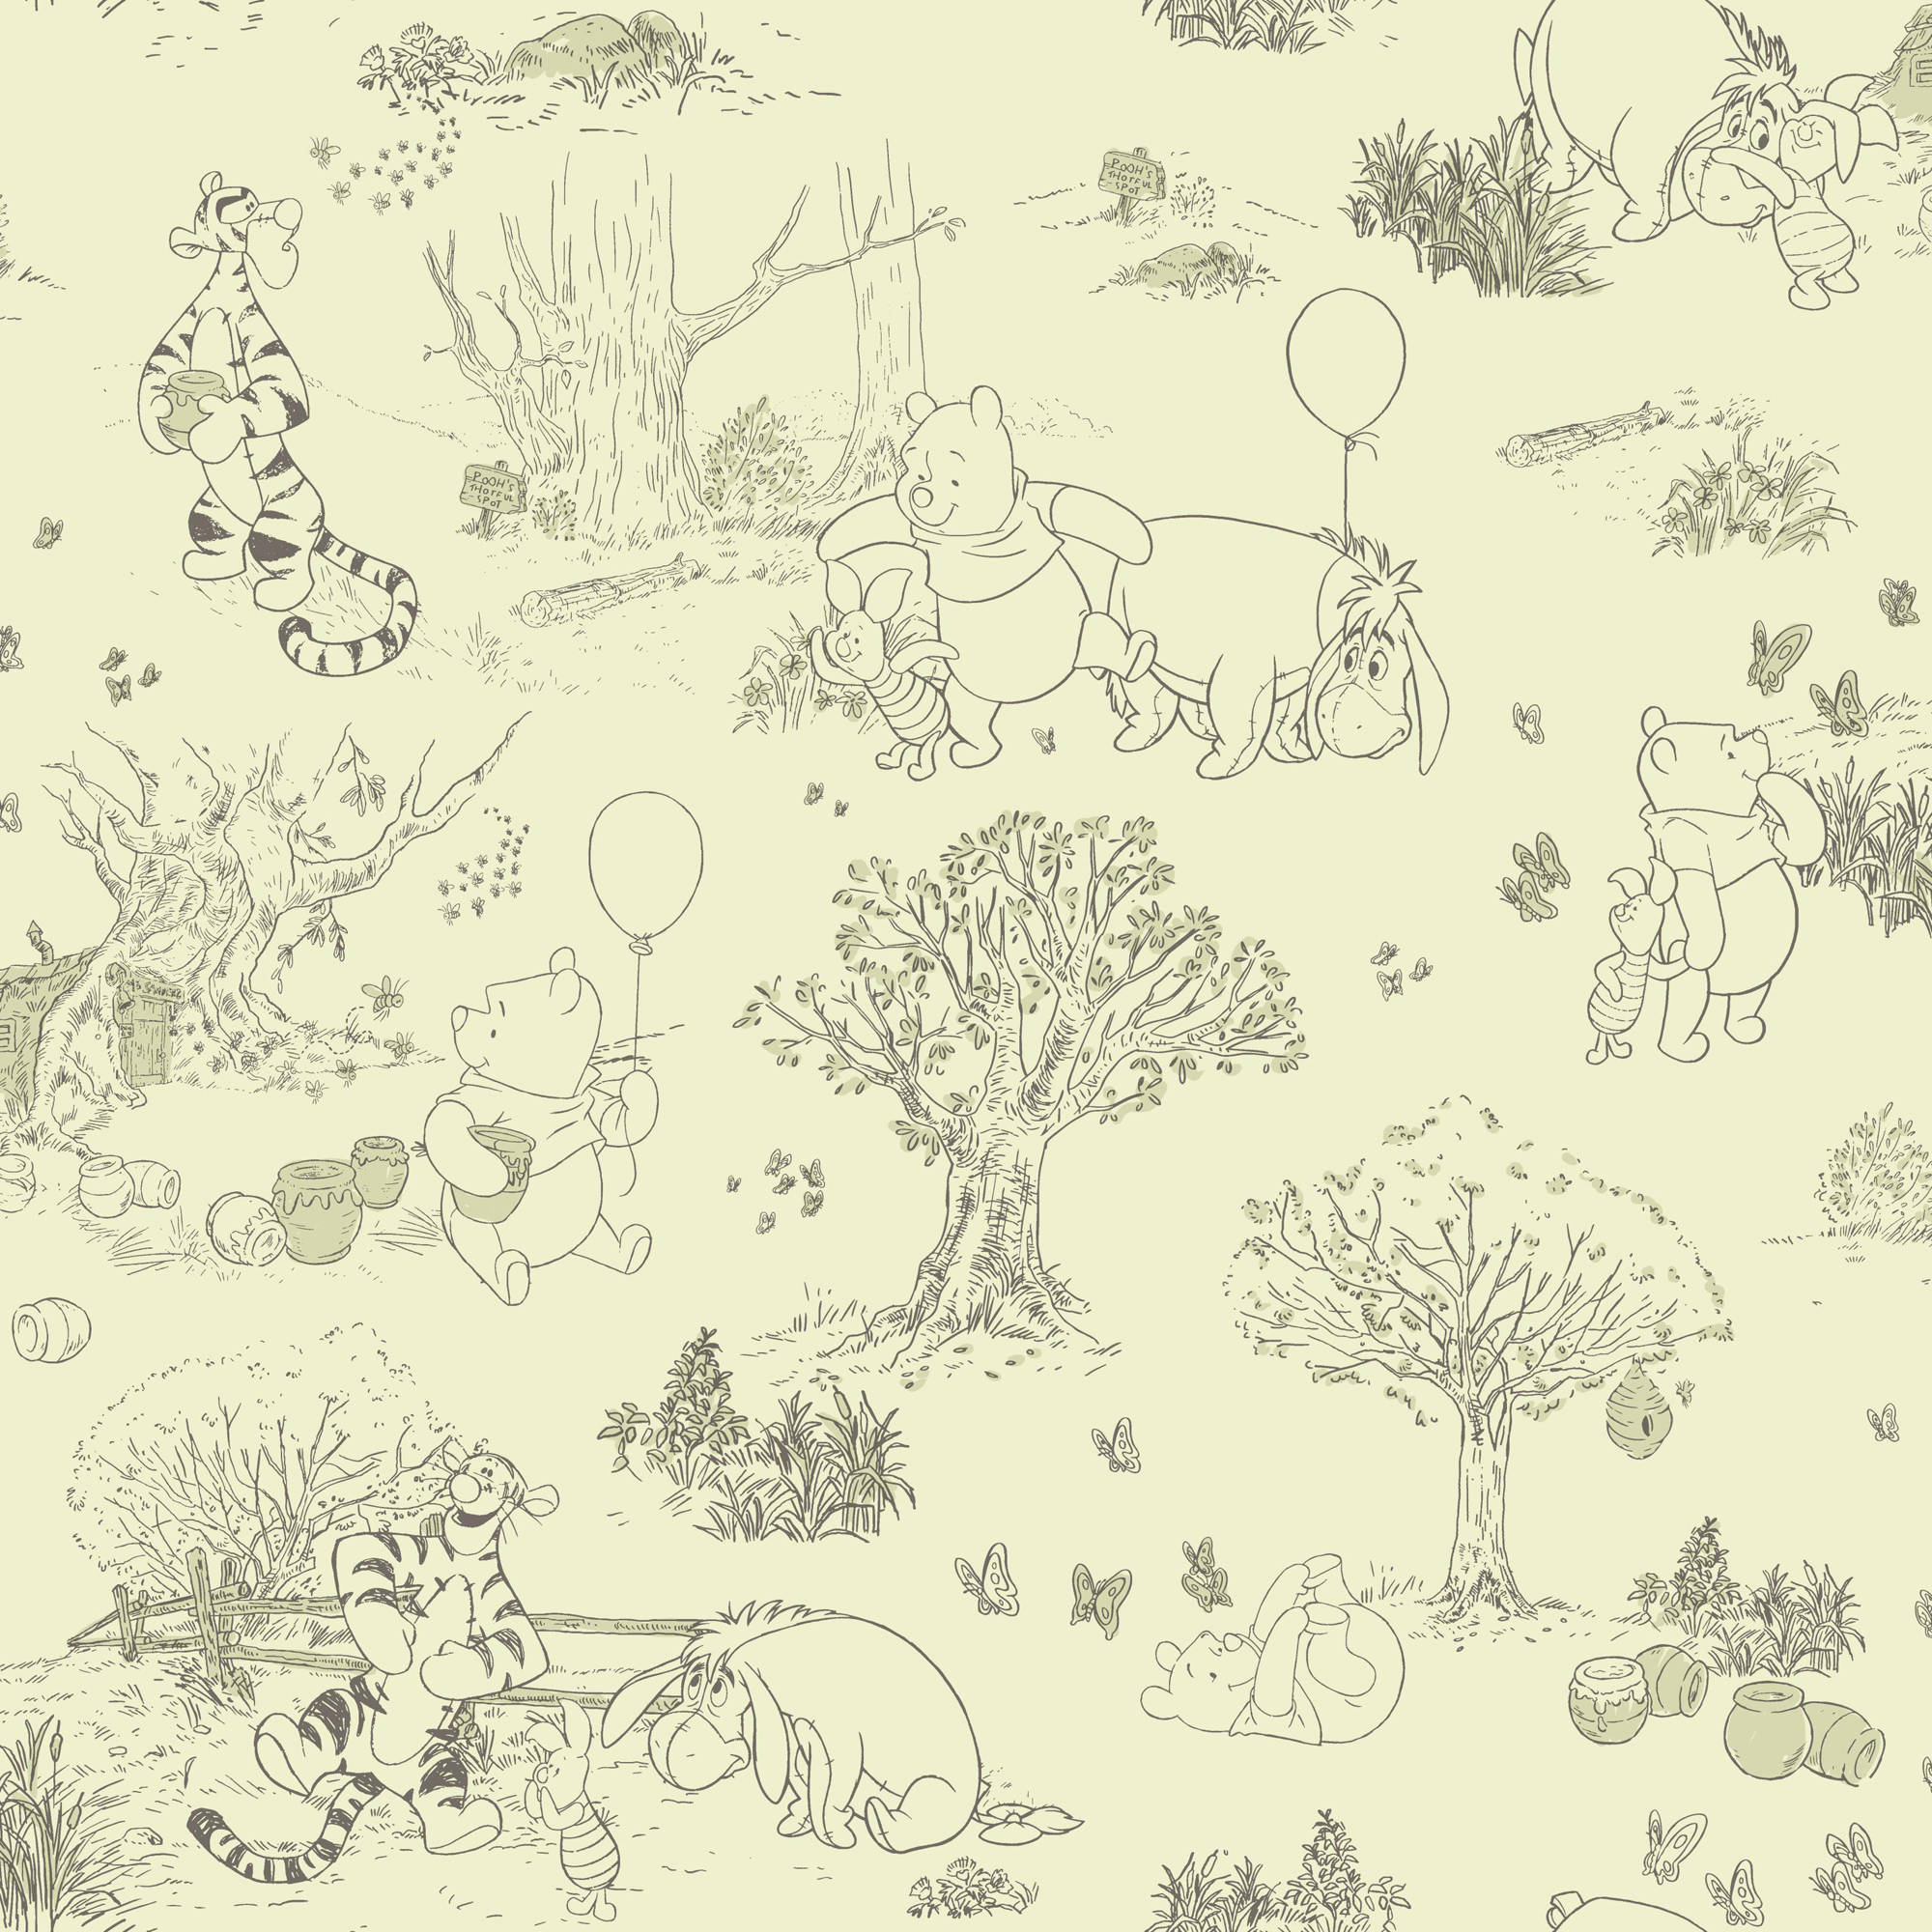 Walt Disney Kids II Pooh and Friends Toile Wallpaper